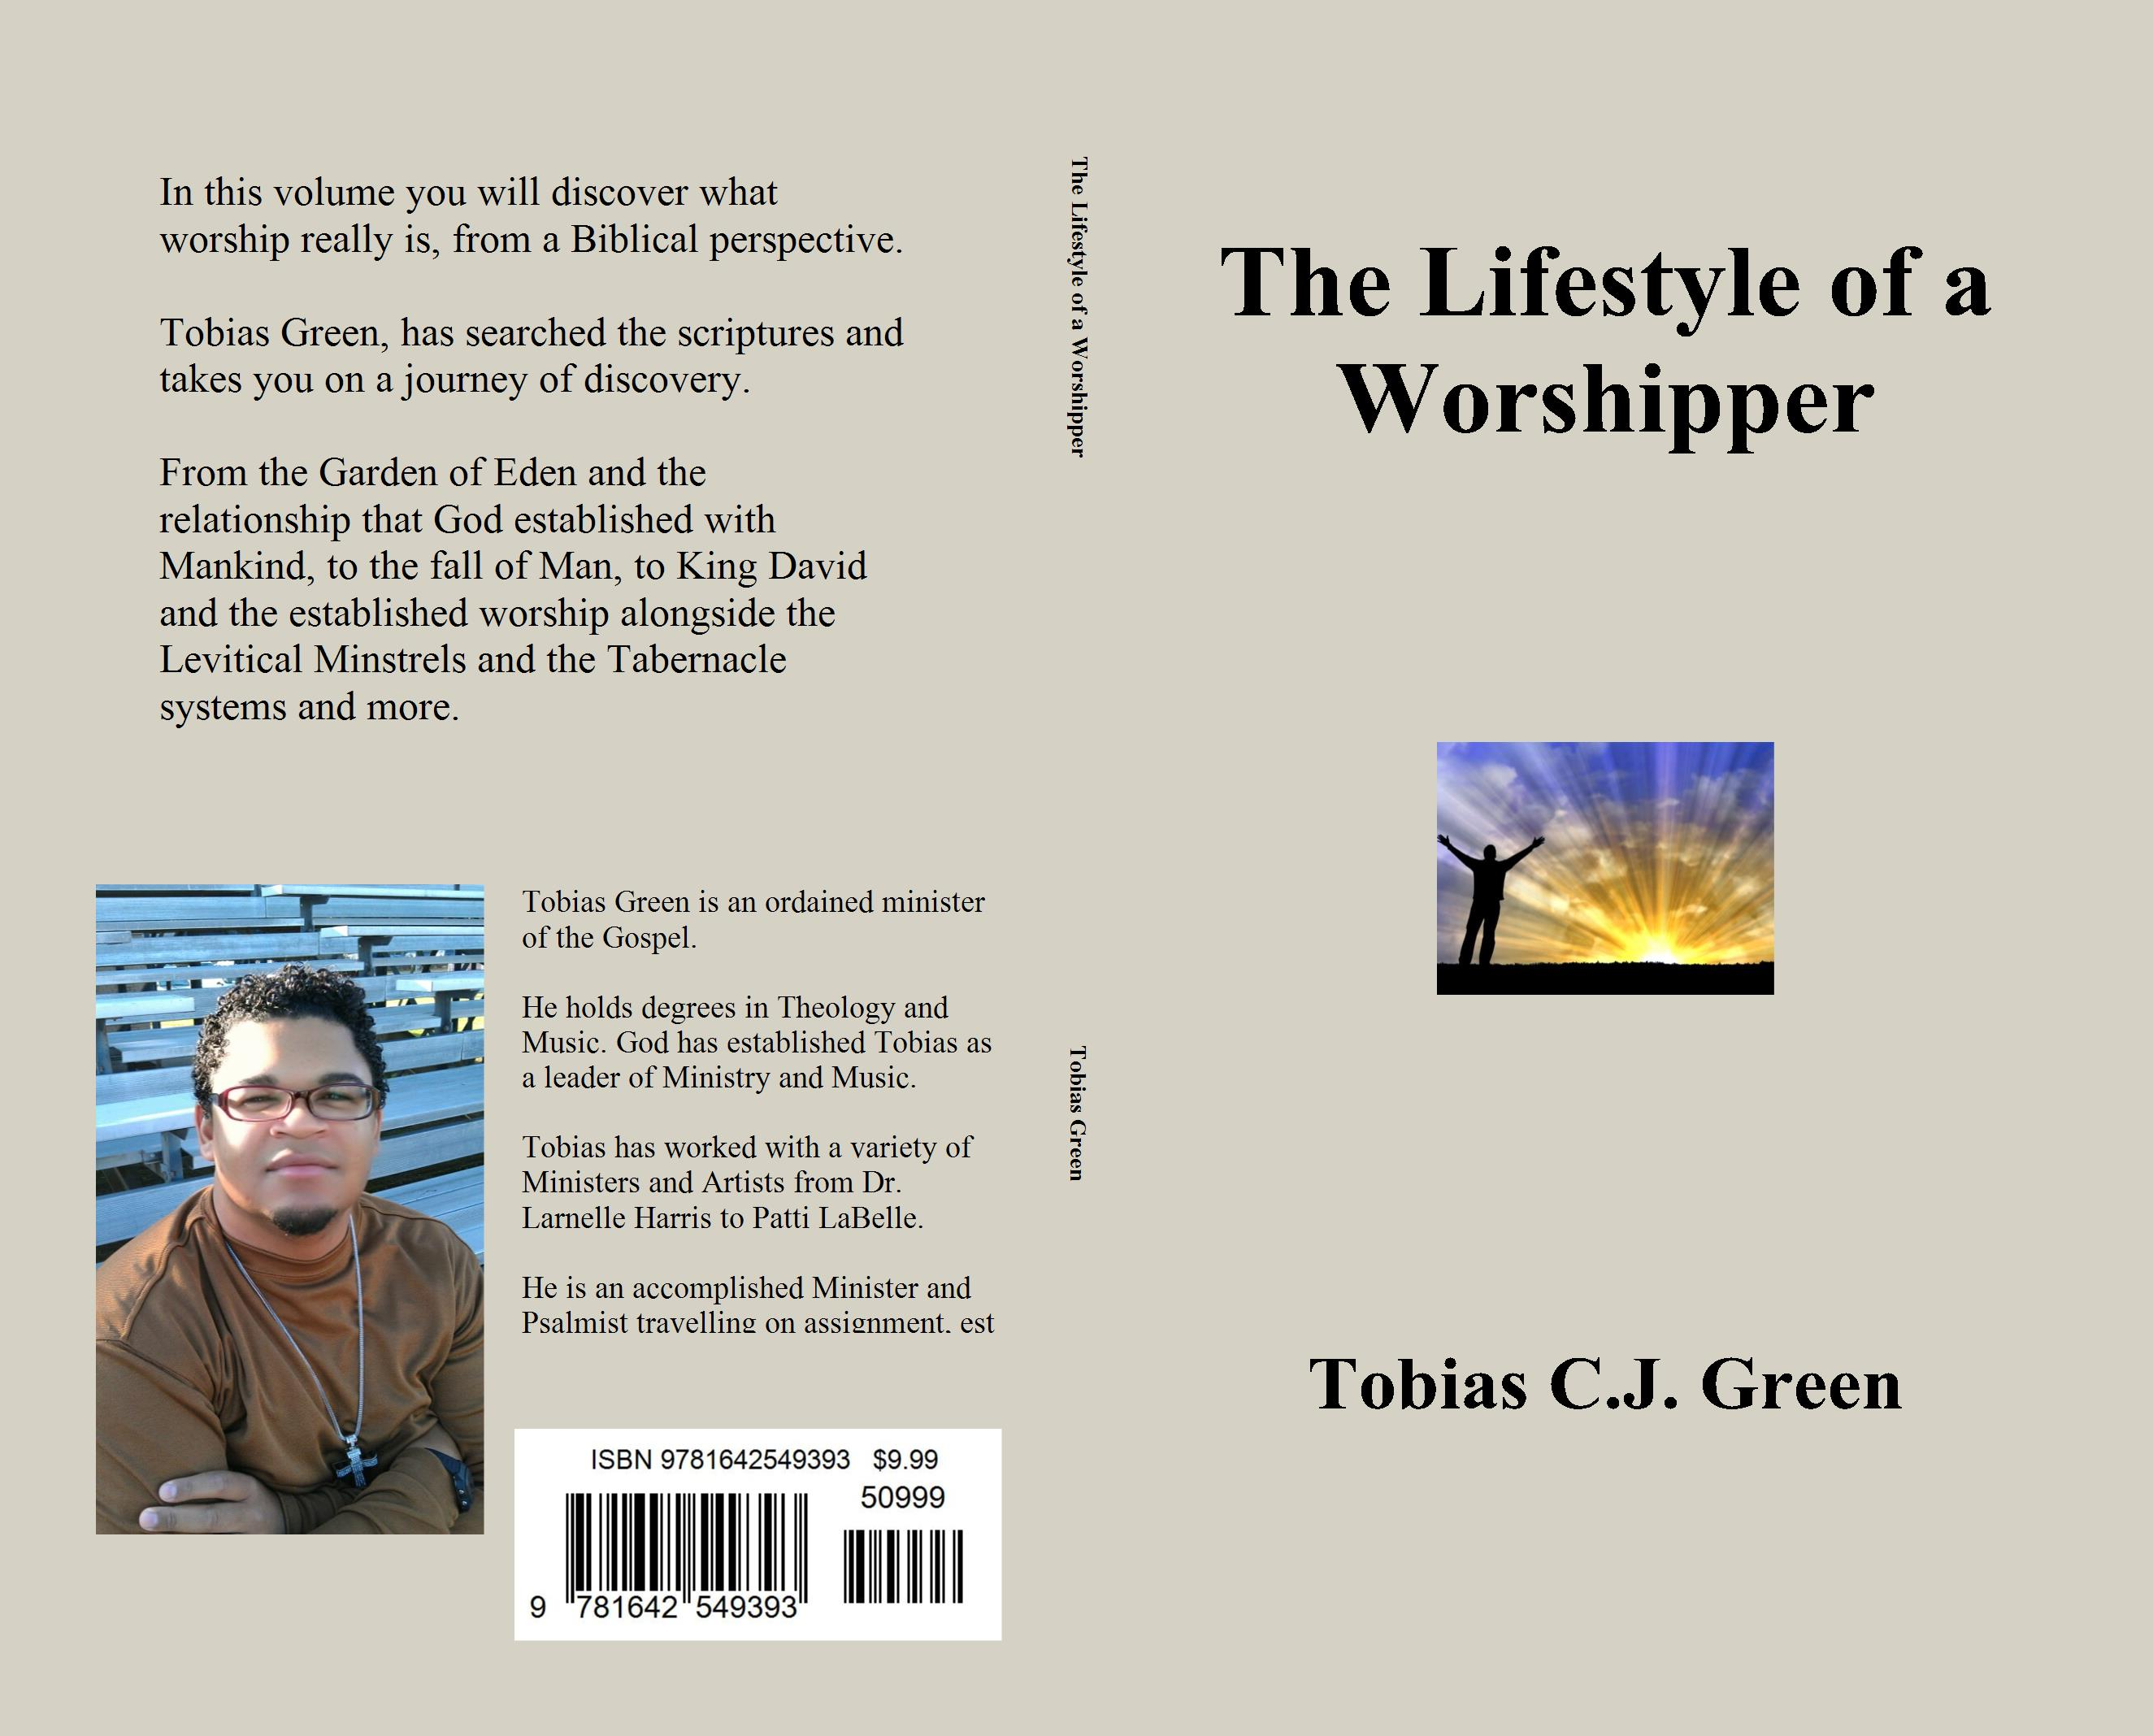 The Lifestyle of a Worshipper cover image